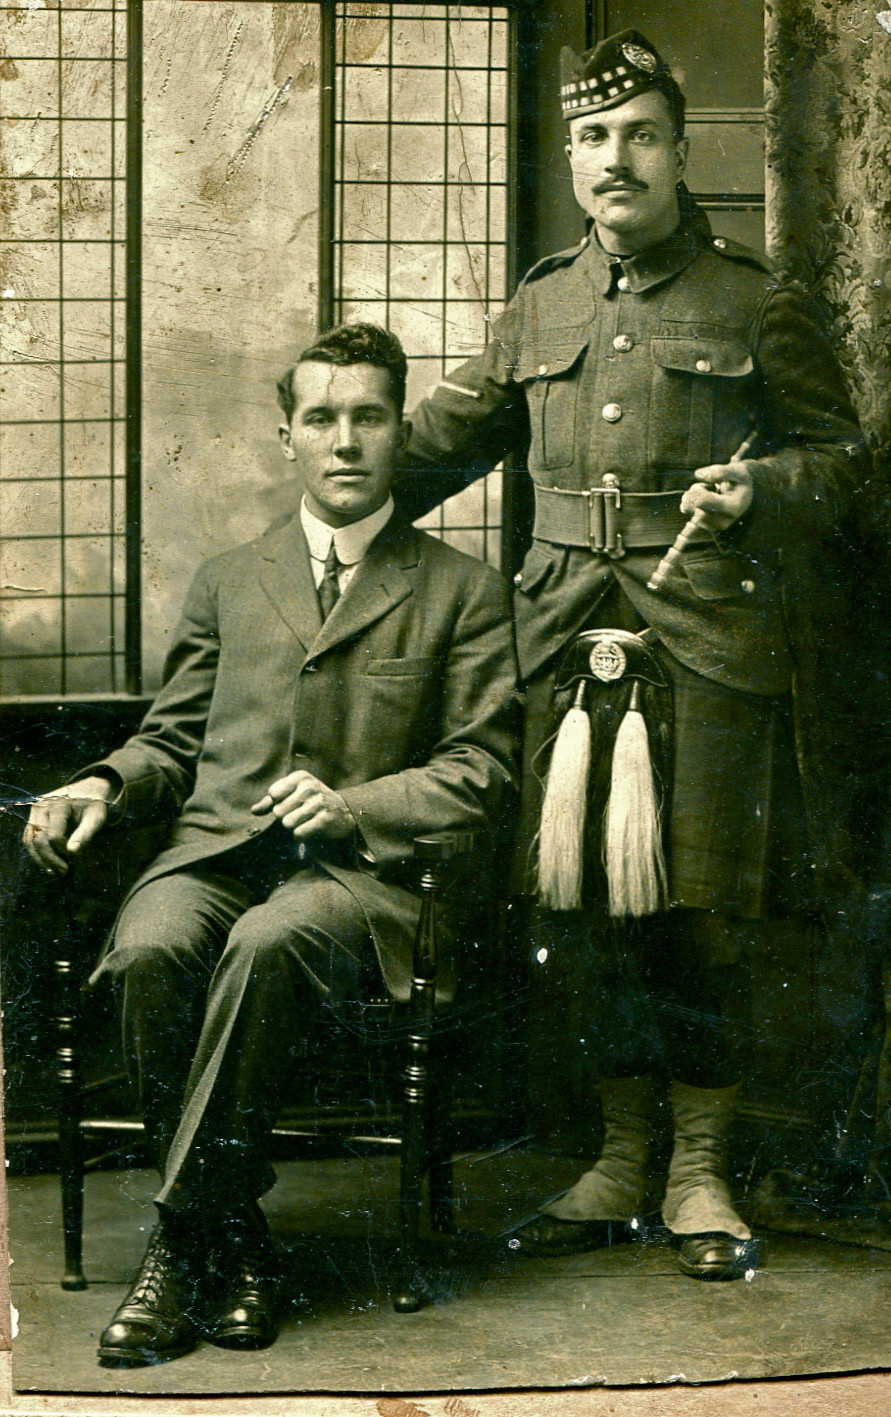 Group Photo– L to R Norman and Harold Davis. Submitted for the project, Operation Picture Me